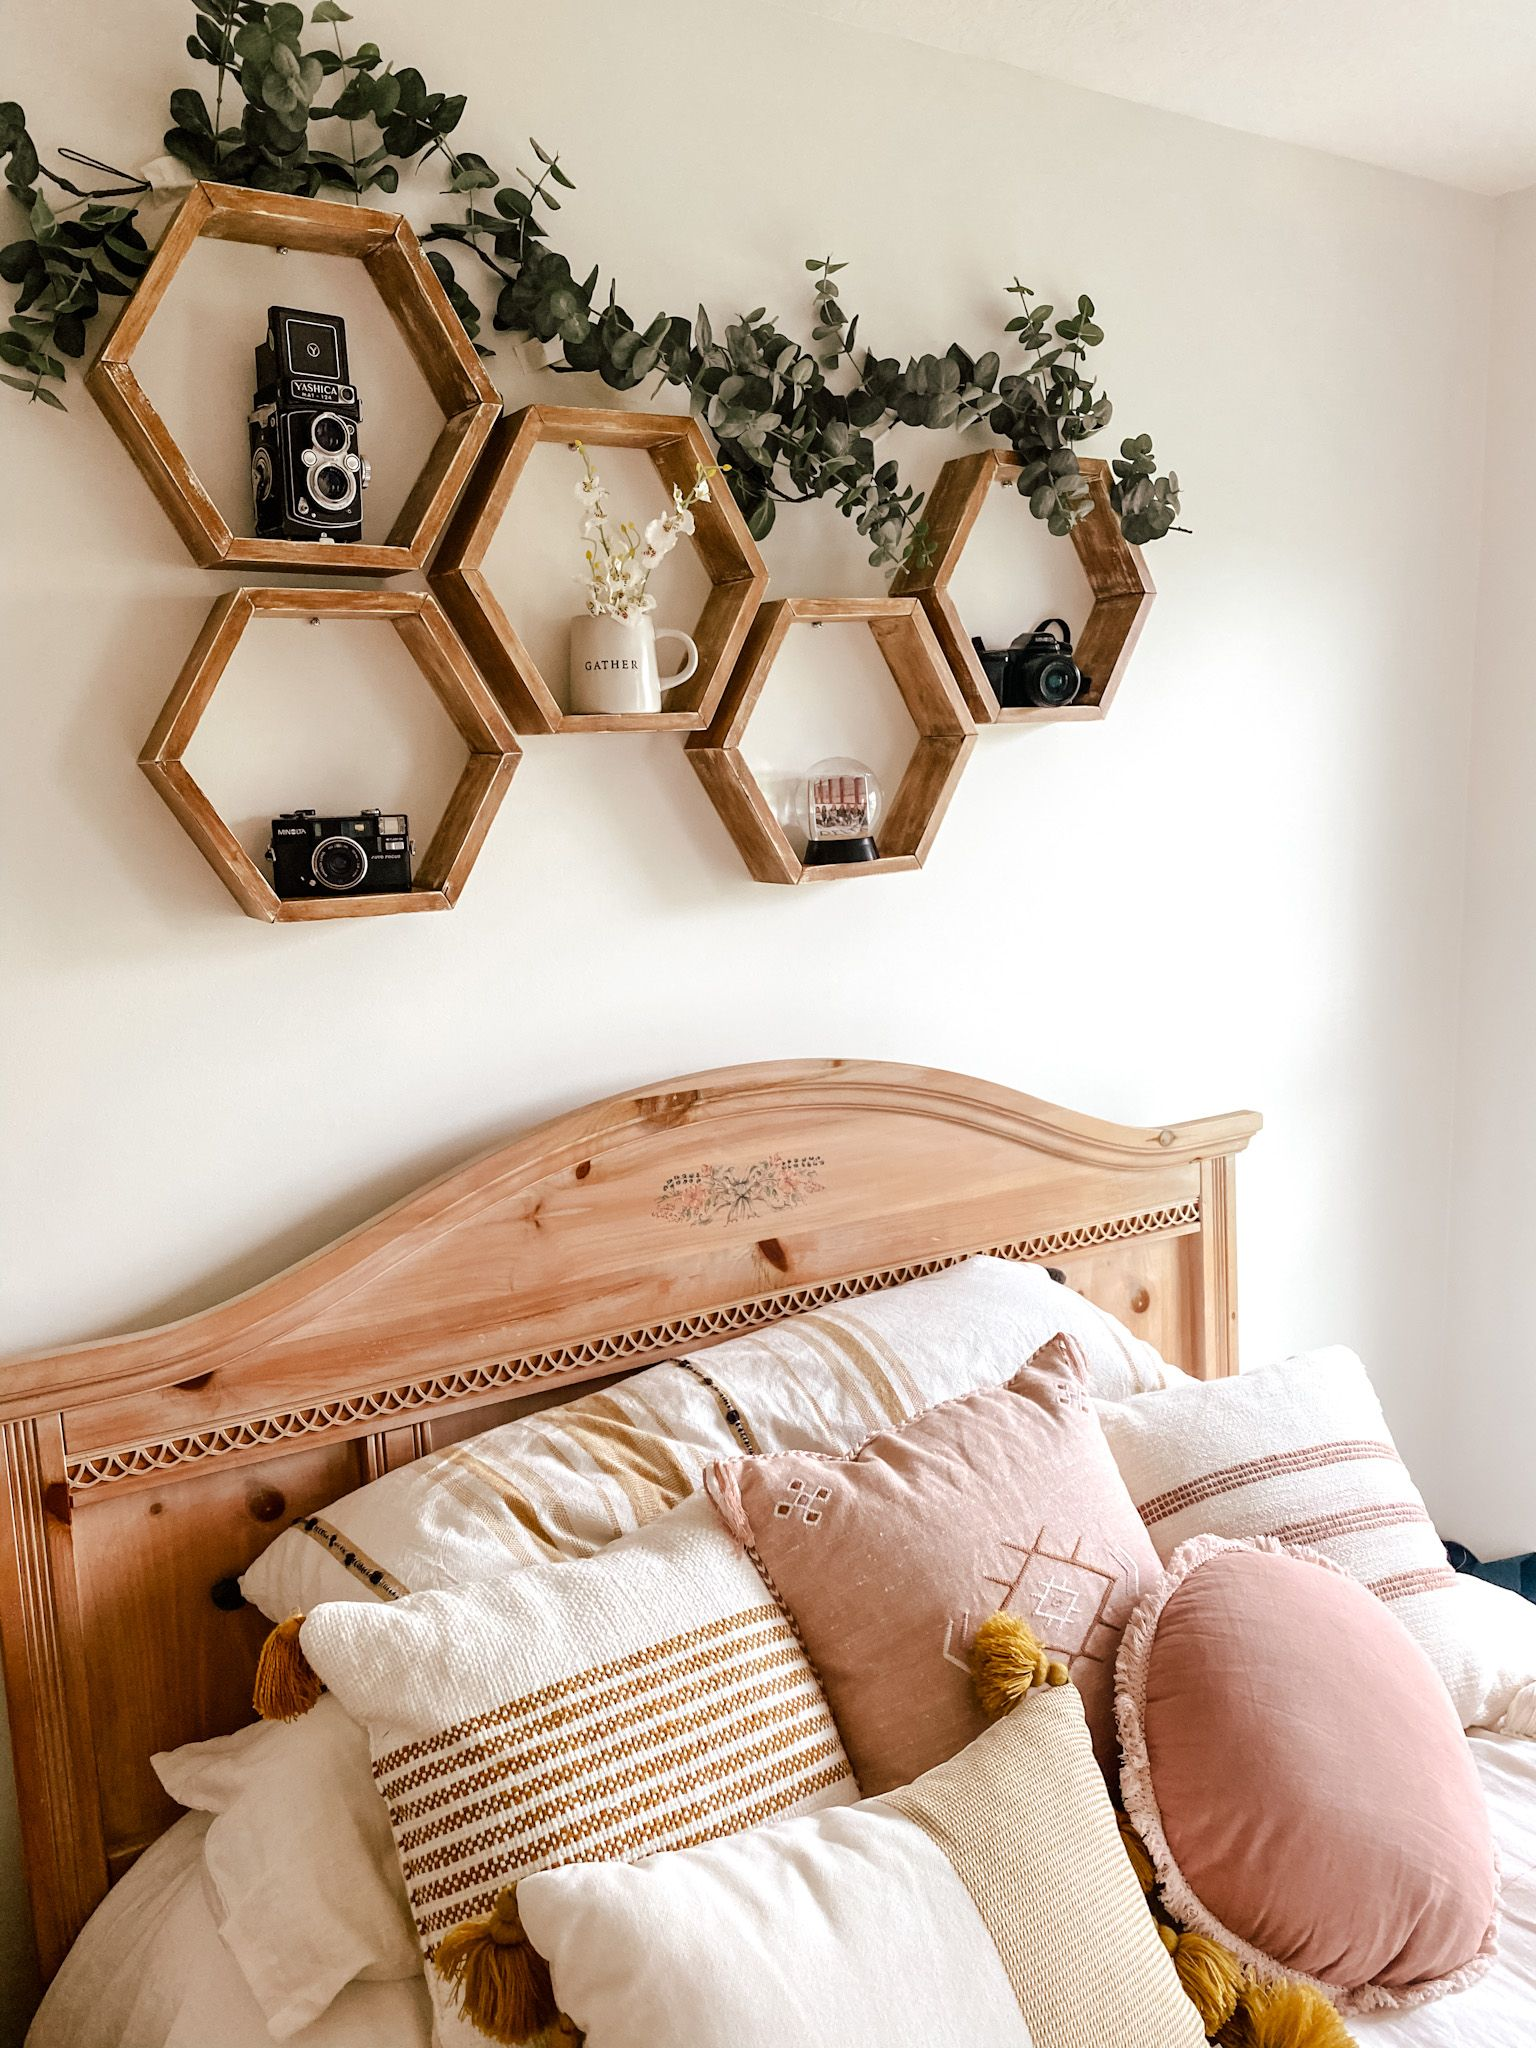 Diy Bedroom Makeover Kelsey Haver Designs Bedroom Makeover Small Room Bedroom Bedroom Decor